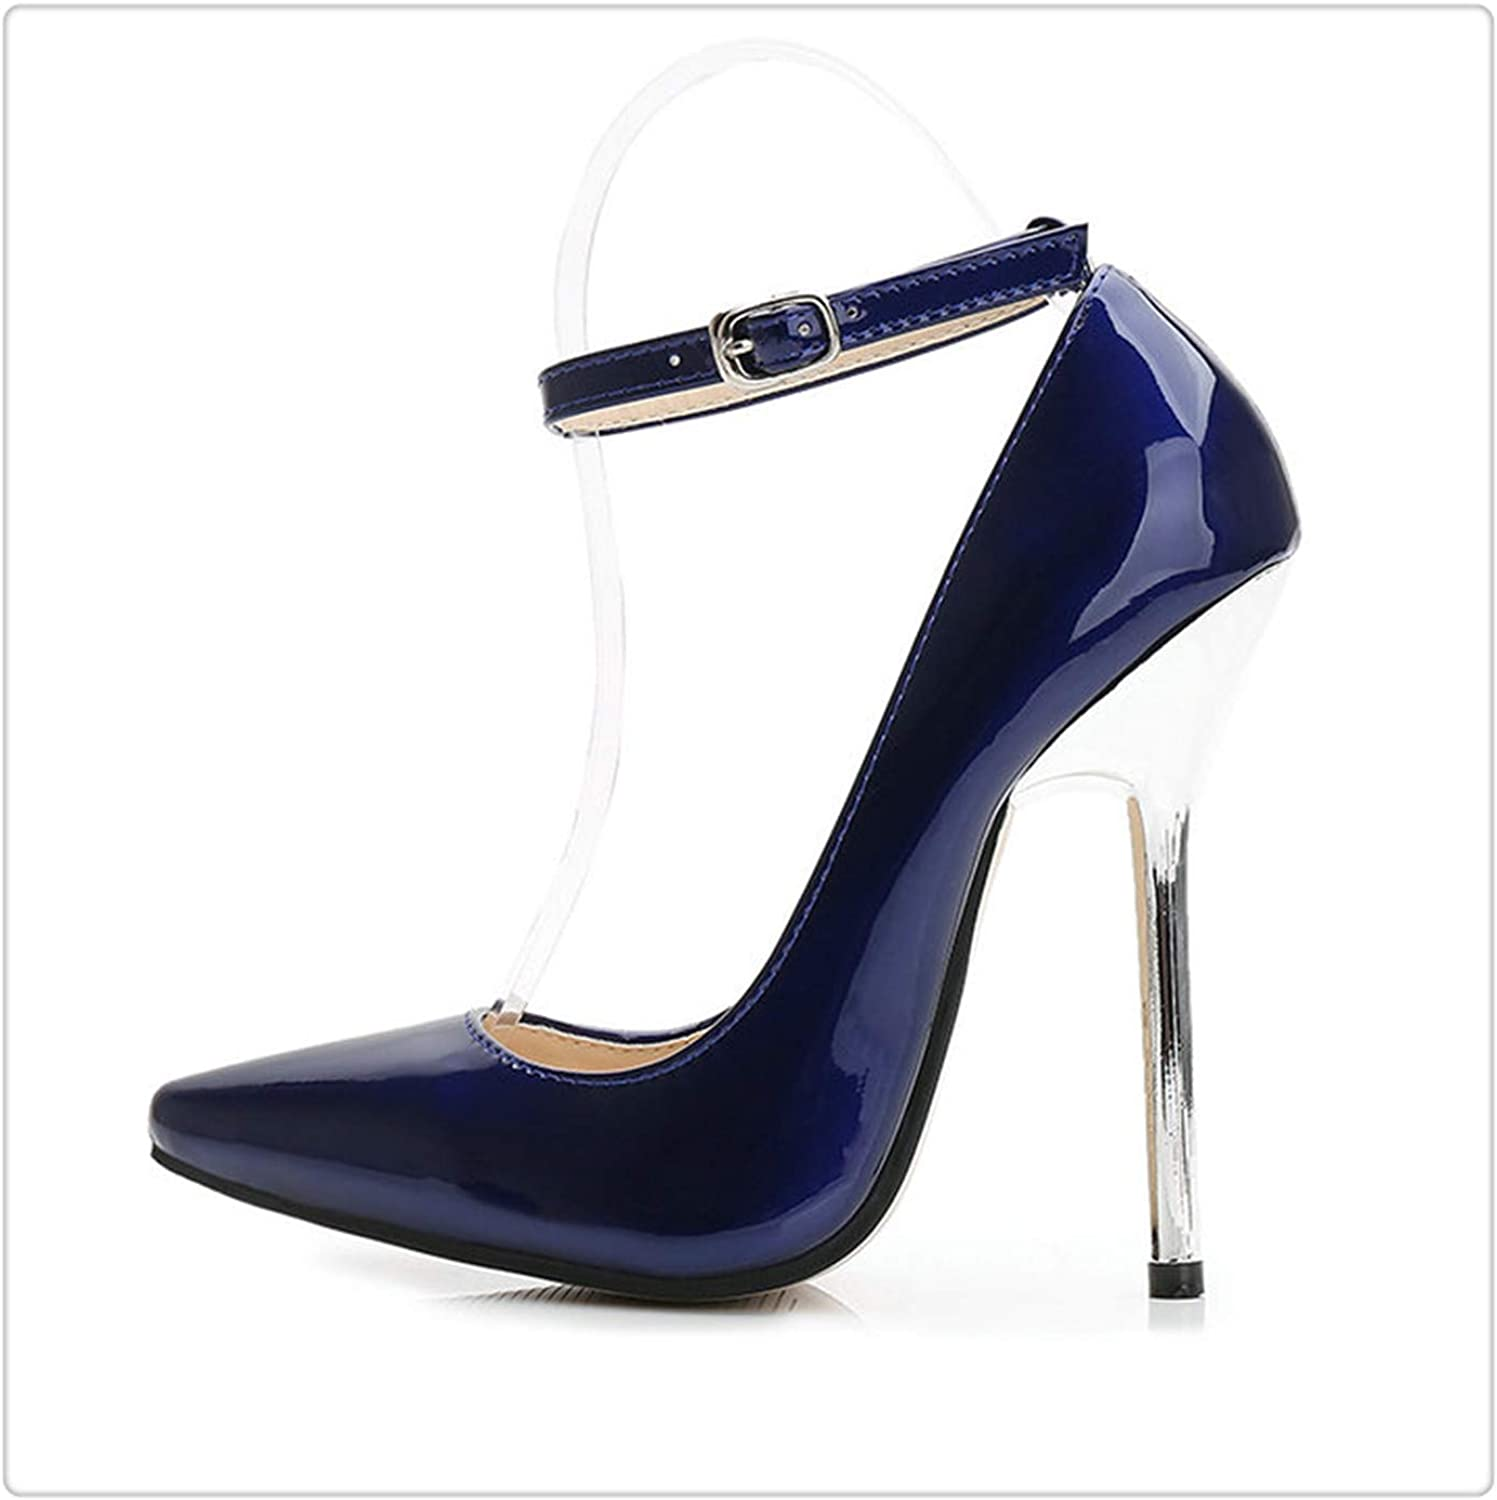 Dmoshibei shoes Women 12 cm High Heels Pumps Leather Pointed Toe Women Pumps Ladies shoes Thin High Heel shoes Large Size 43 44 bluee 41